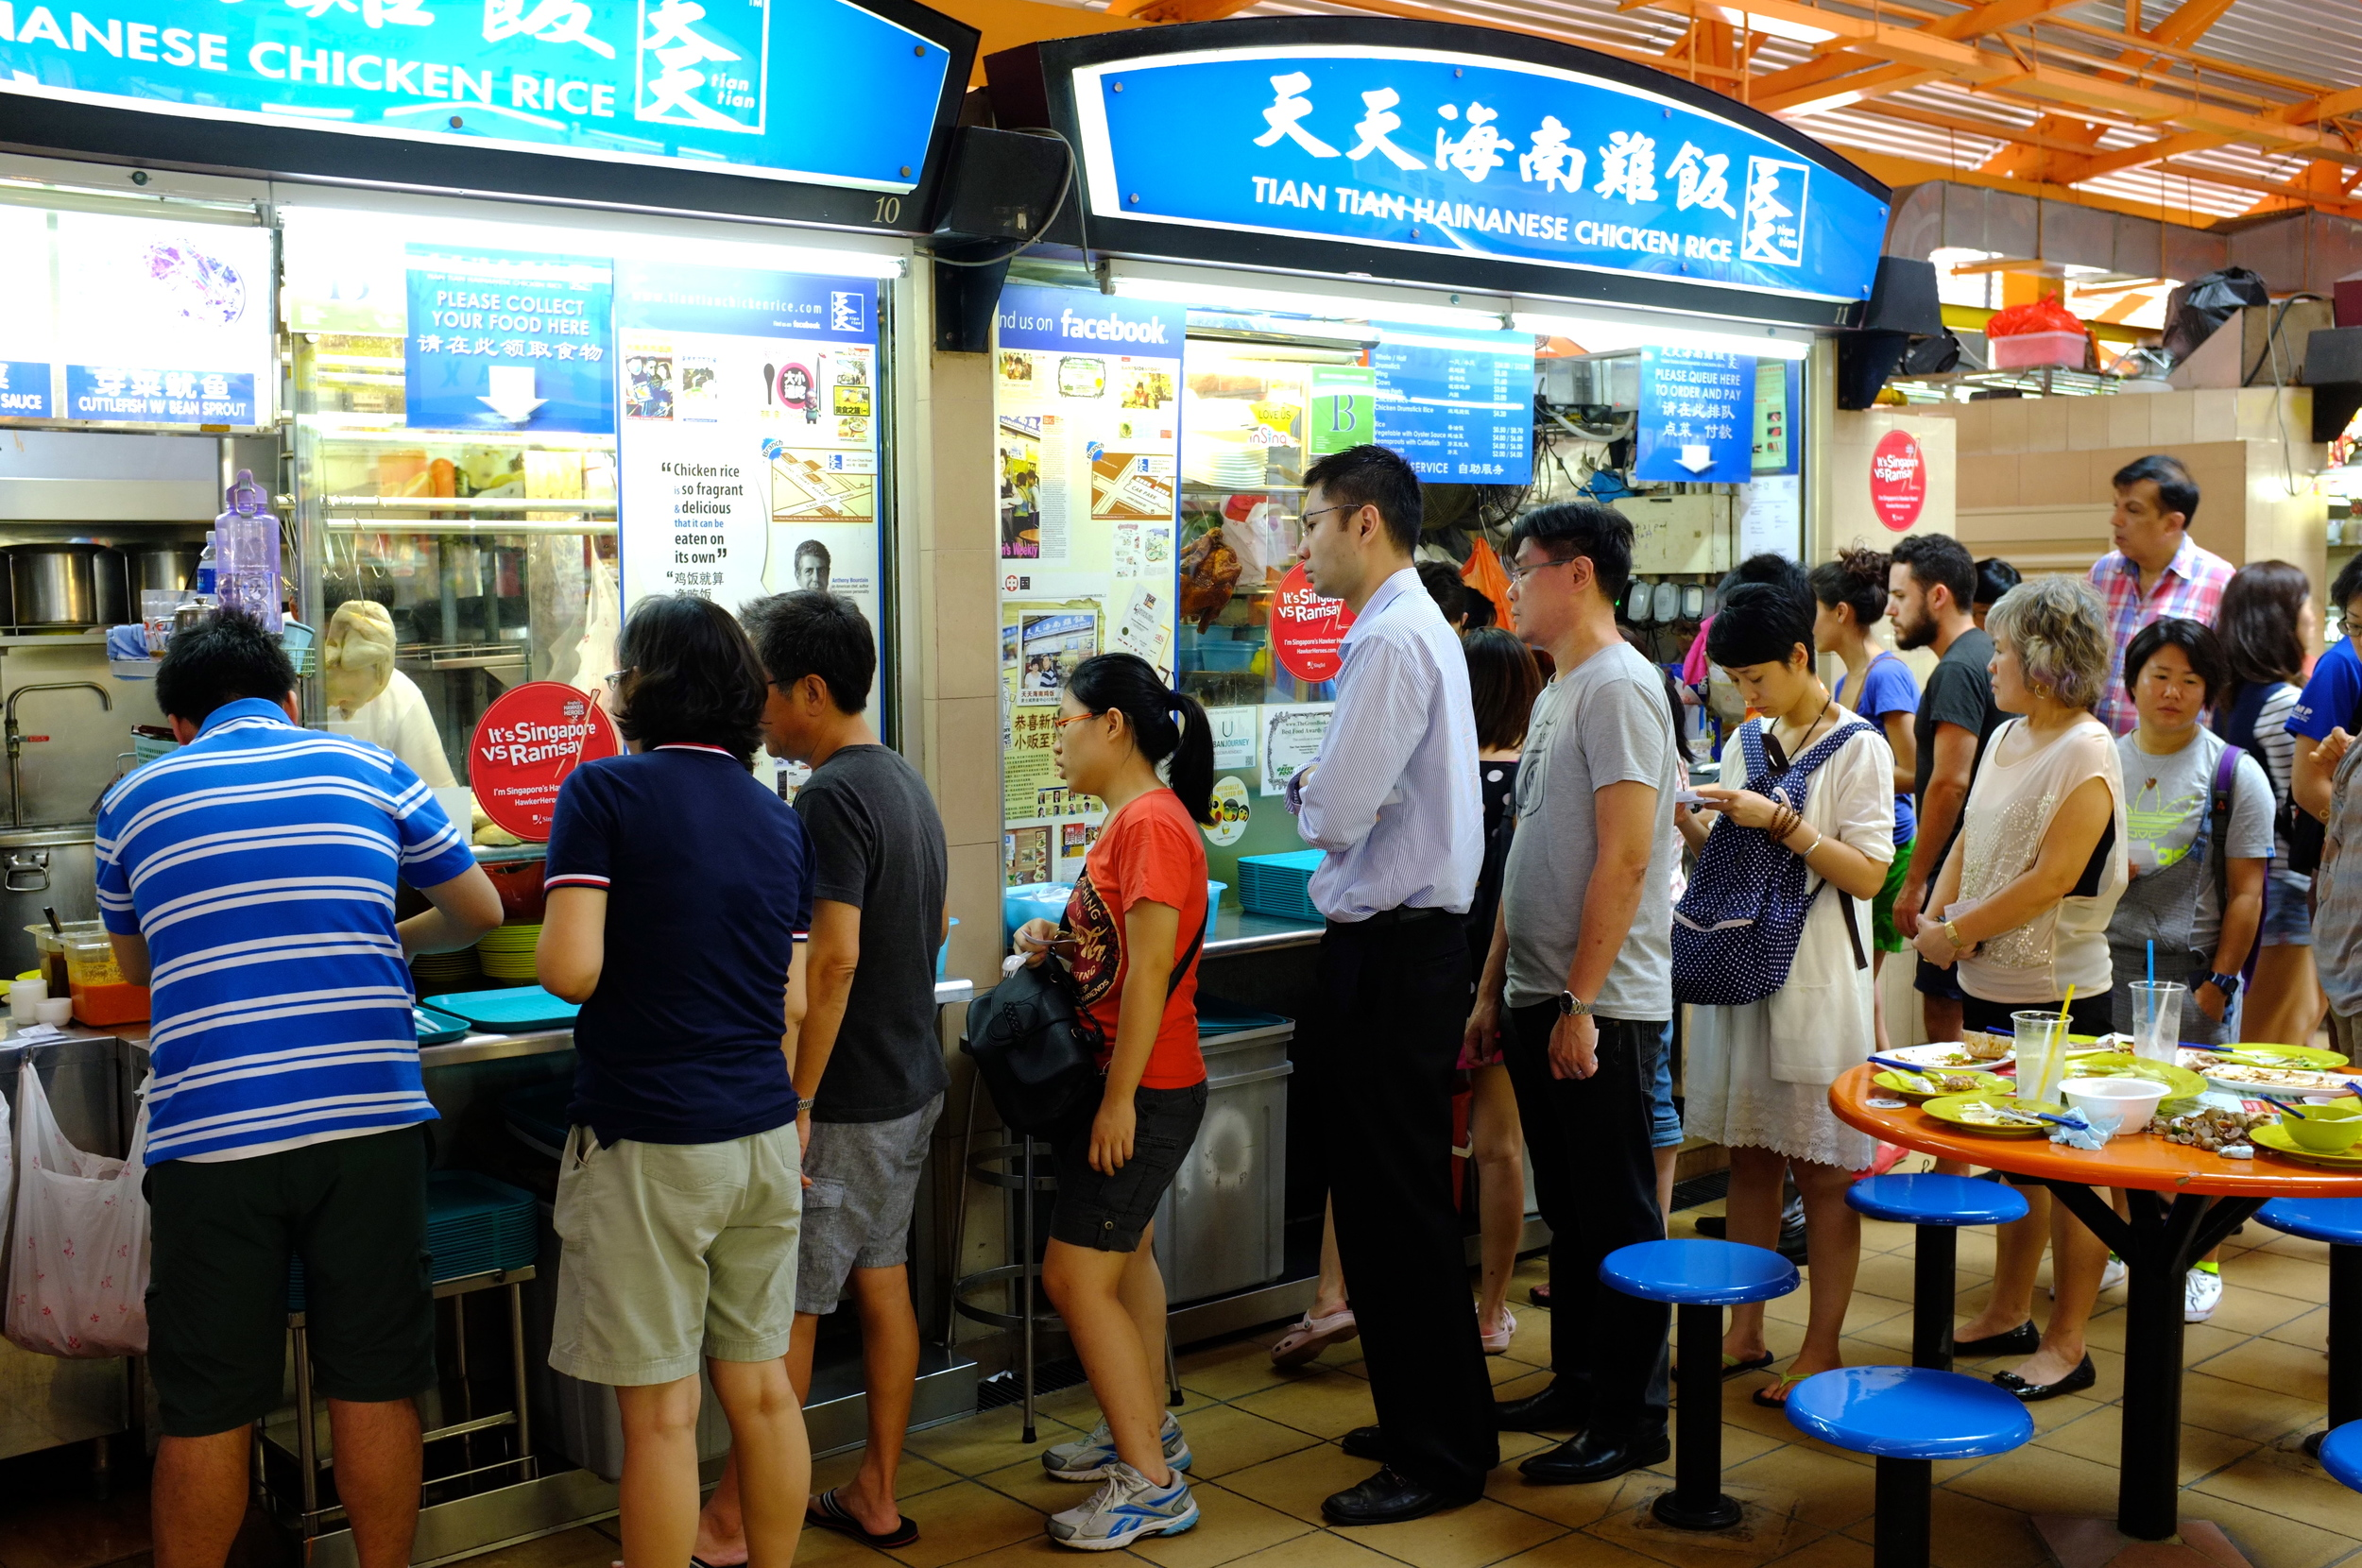 People lining up for Hainanese chicken rice at Tian Tian in Maxwell Road Hawker Centre, Singapore